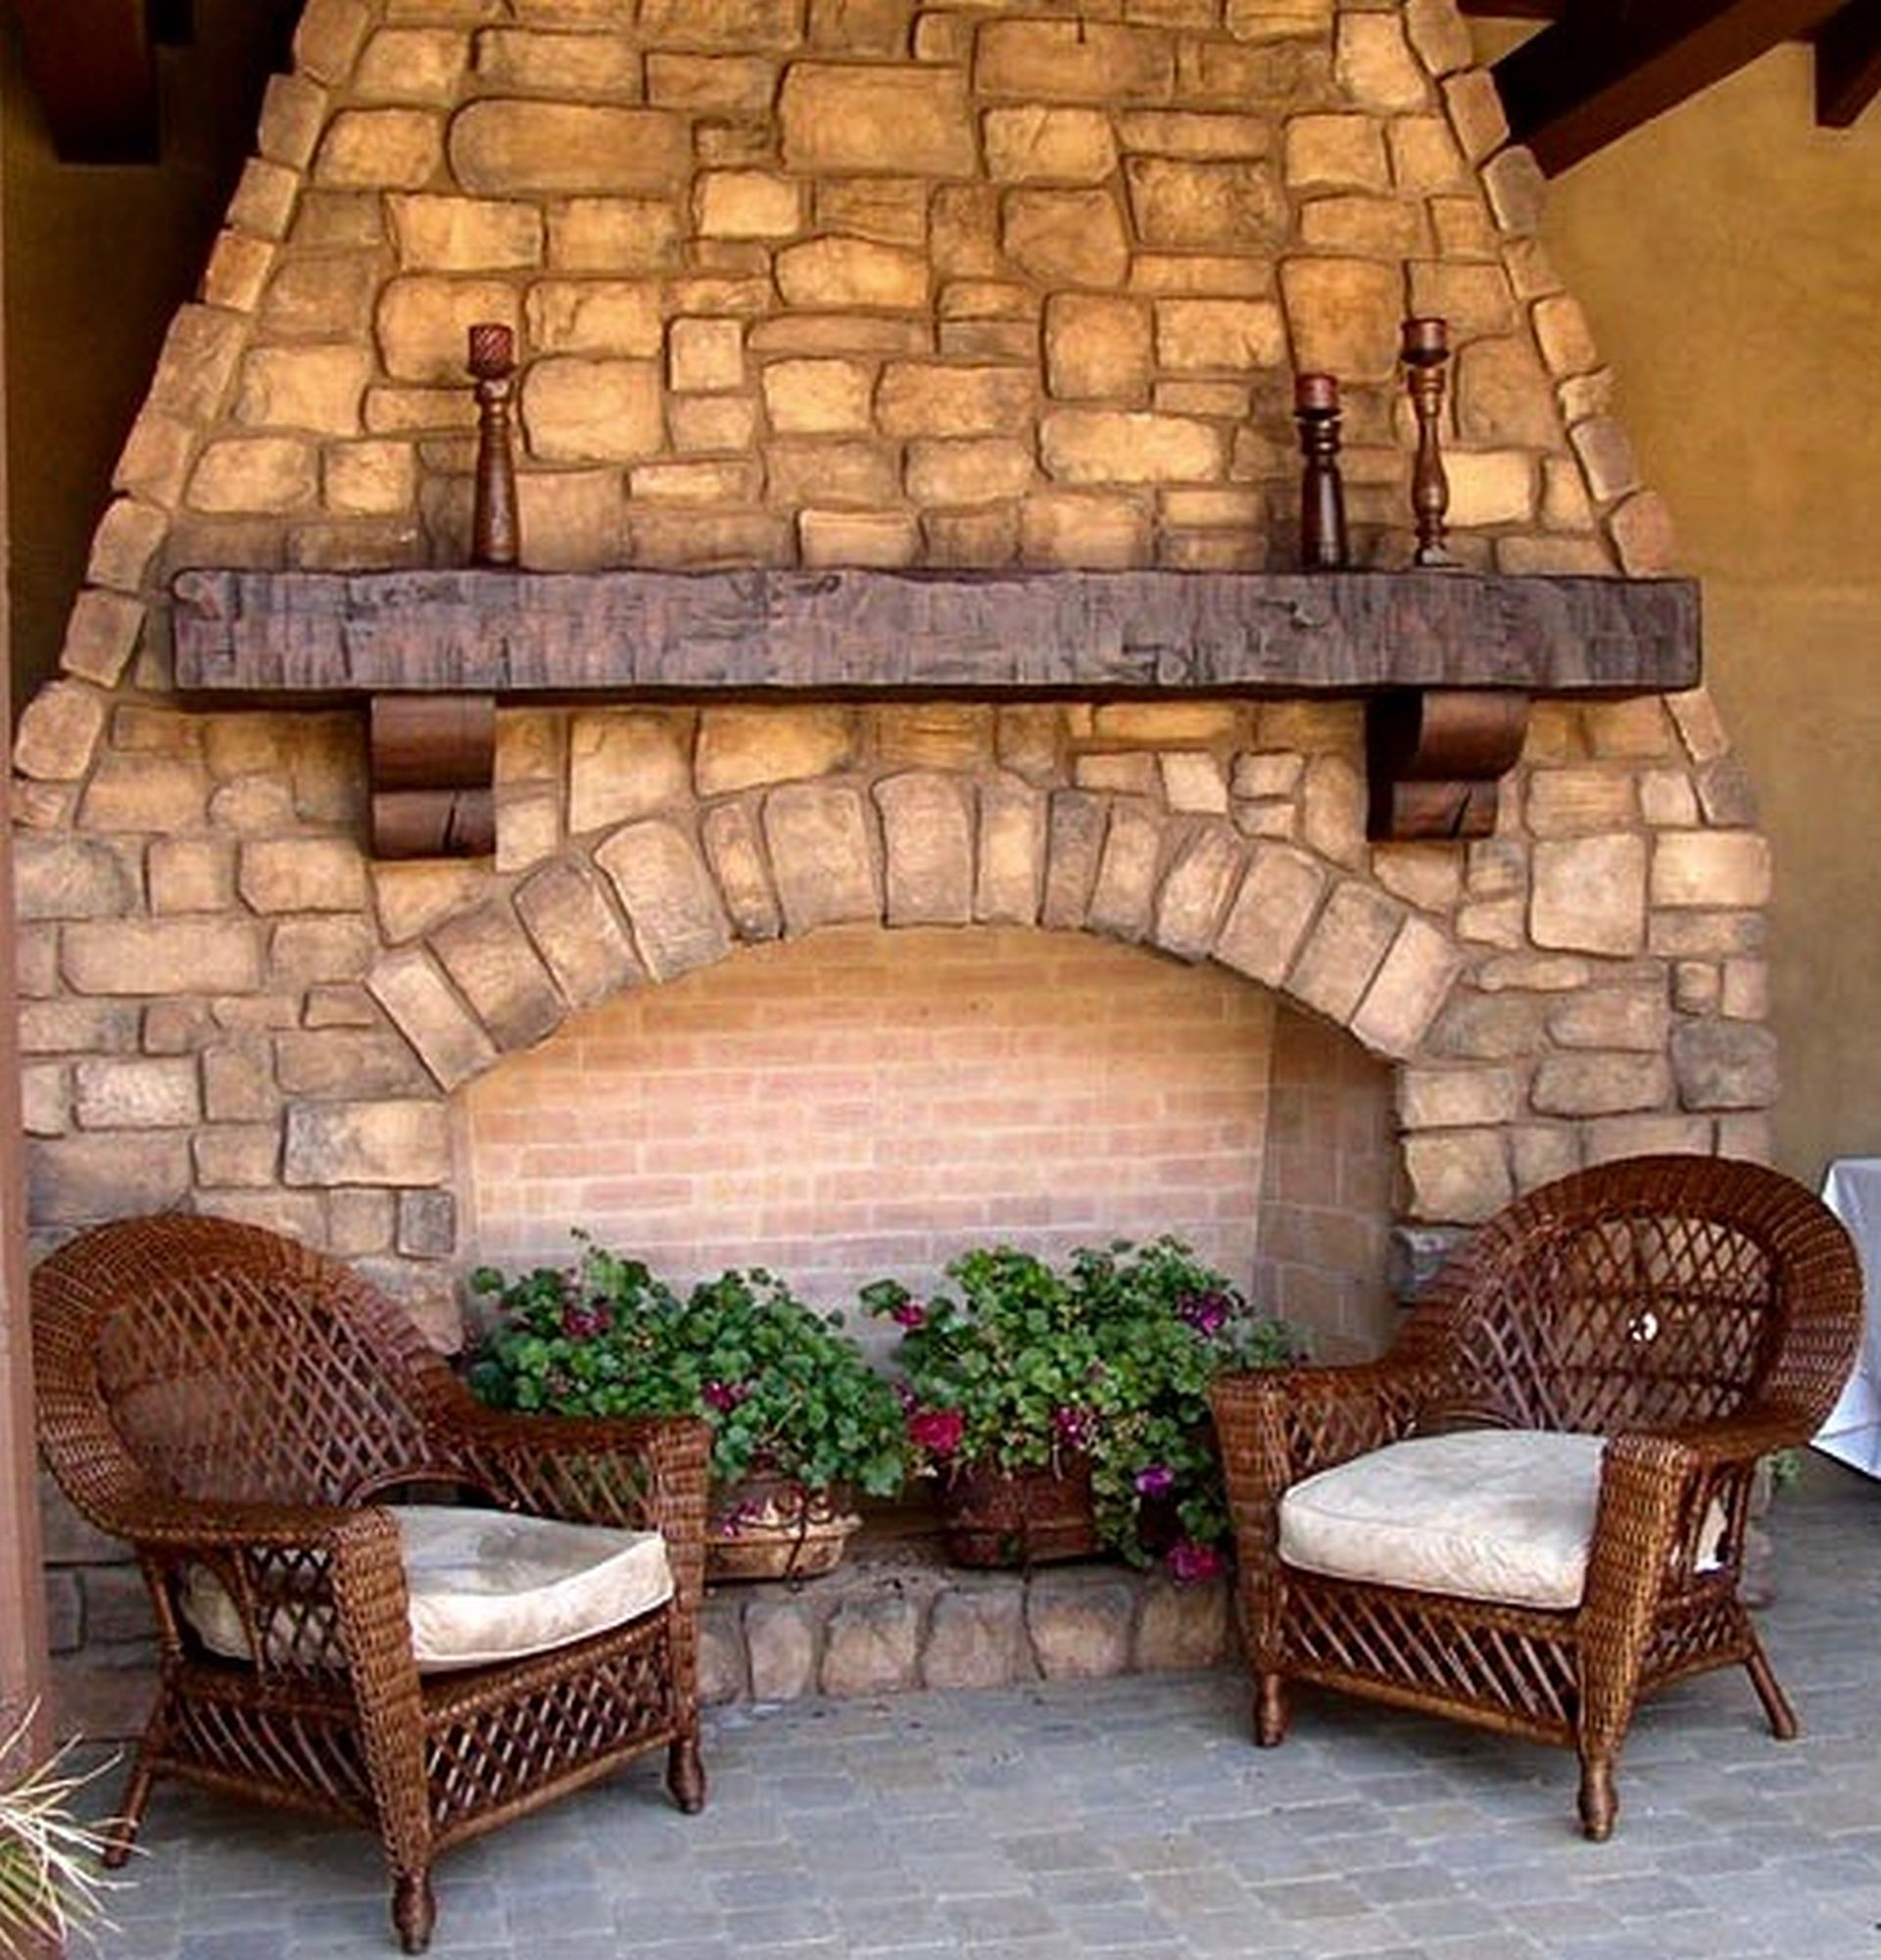 Rustic Mantels and Corbels